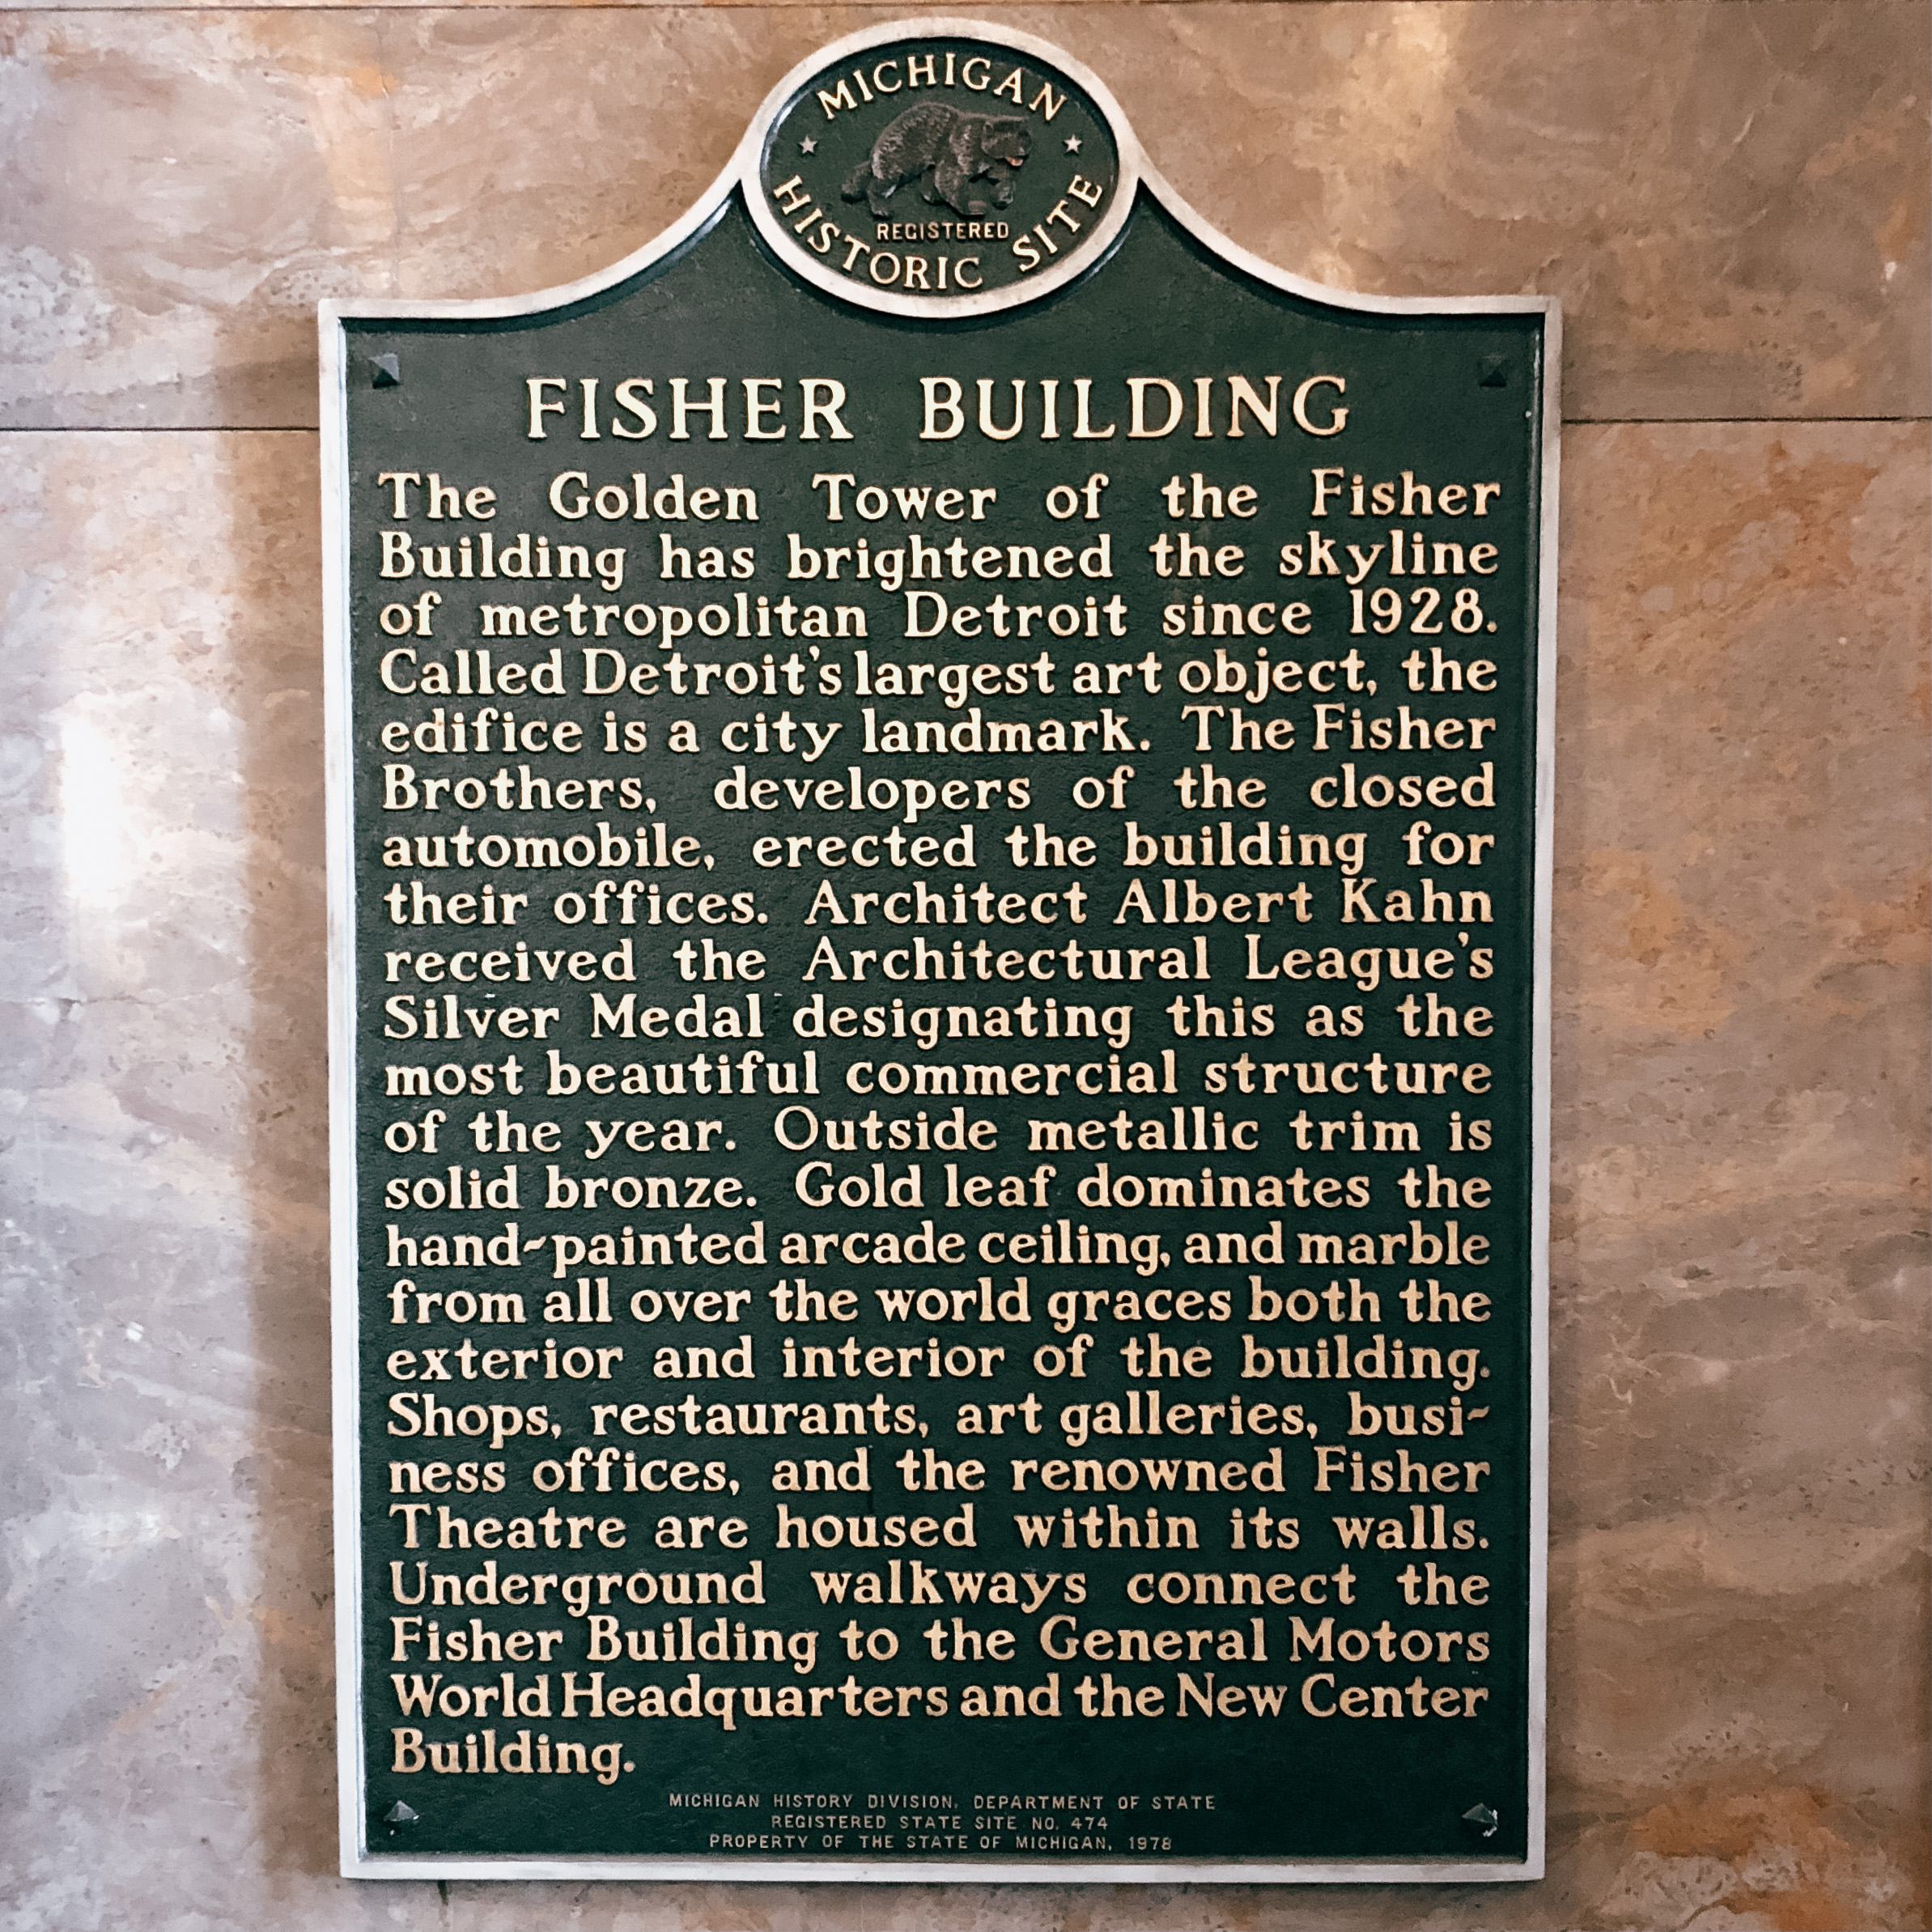 IMG 1263 - The Fisher Building.